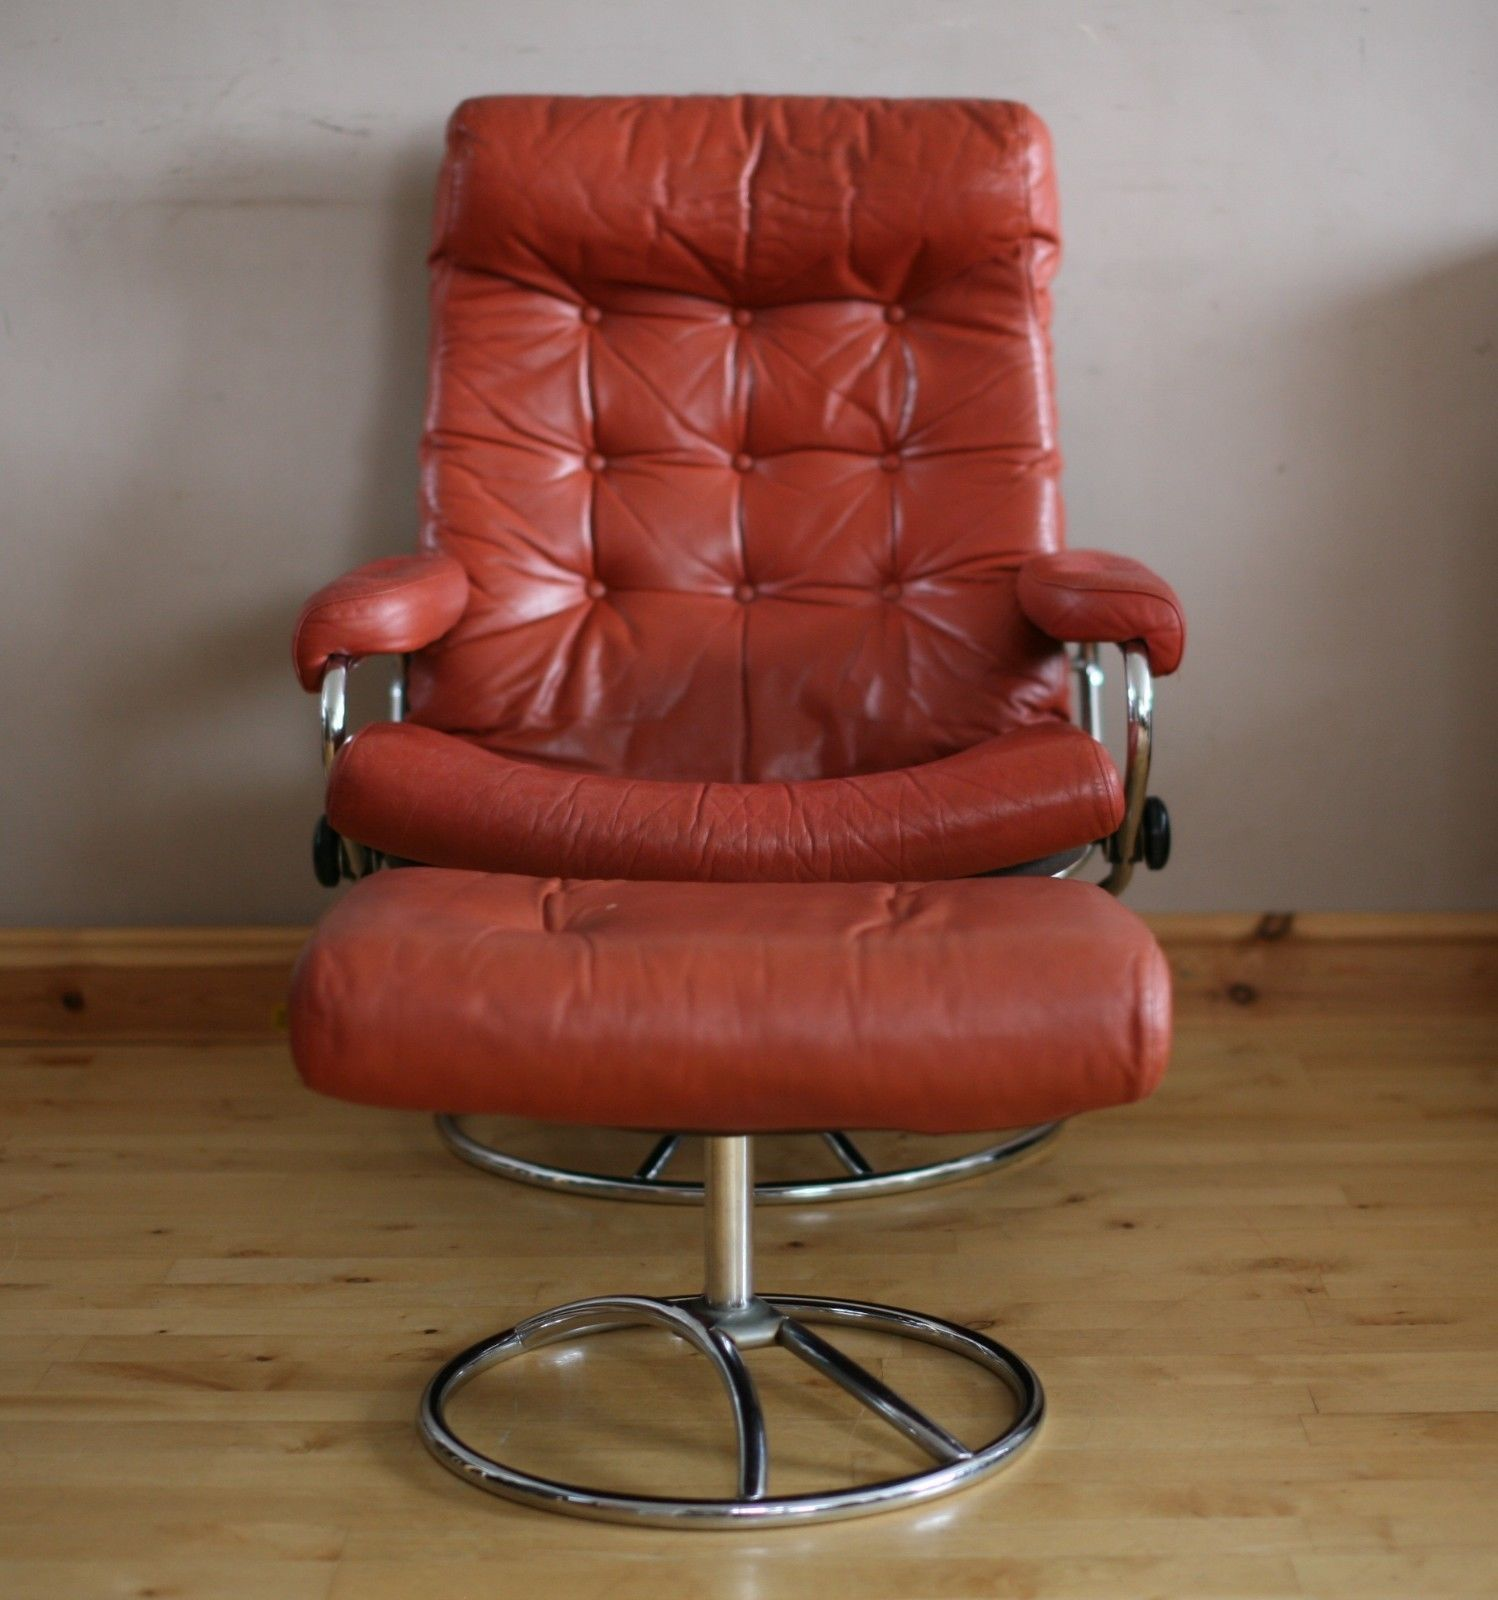 Stressless Sessel Ebay Details About Ekornes Stressless Leather Reclining Armchair